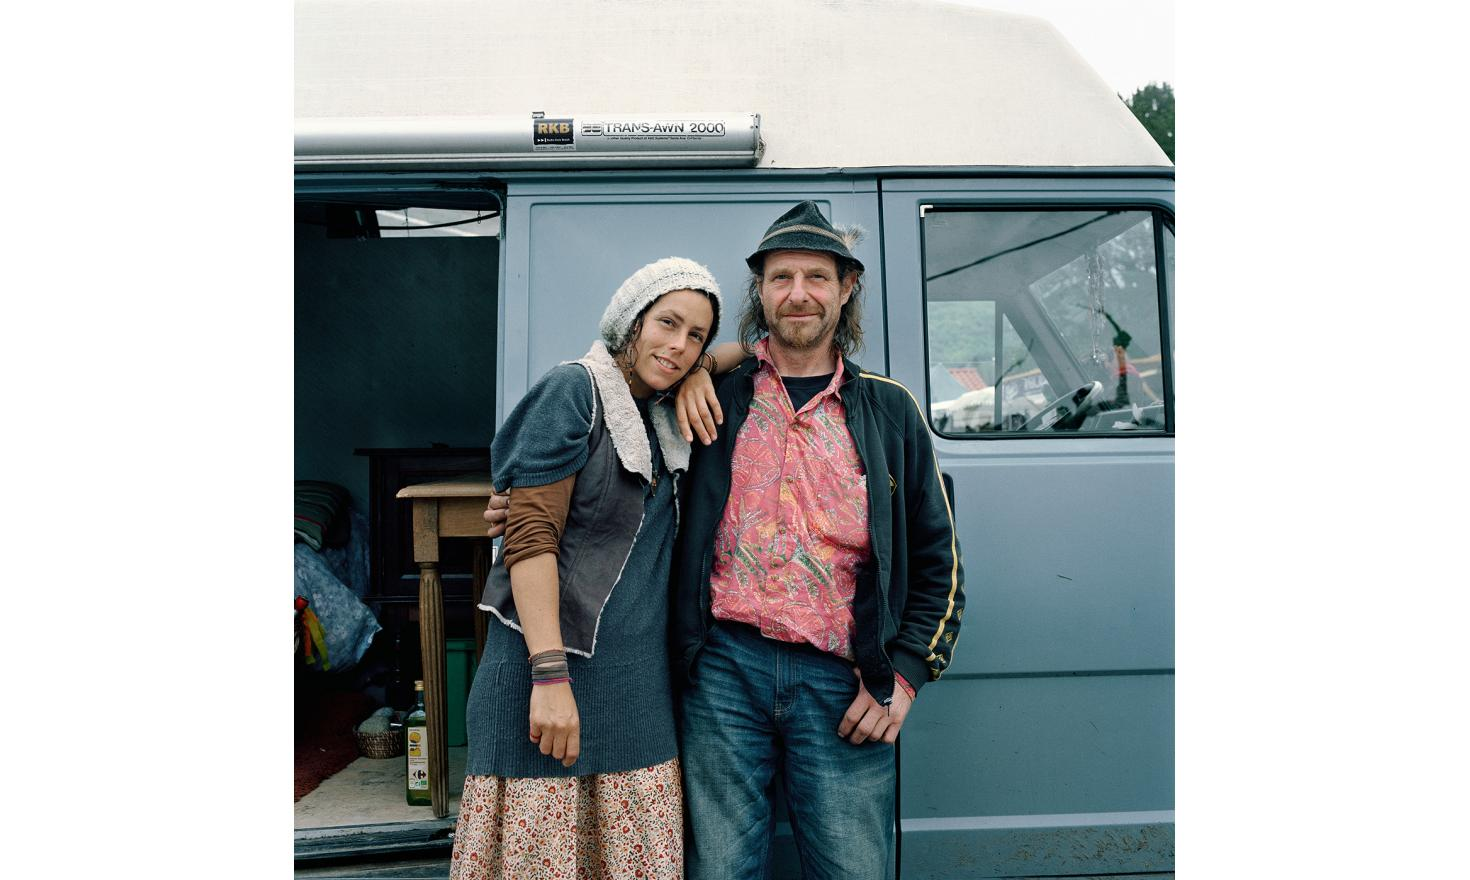 Sandrine and Thomas. Sandrine lives in a small valley isolated. She is a high mountain guide.